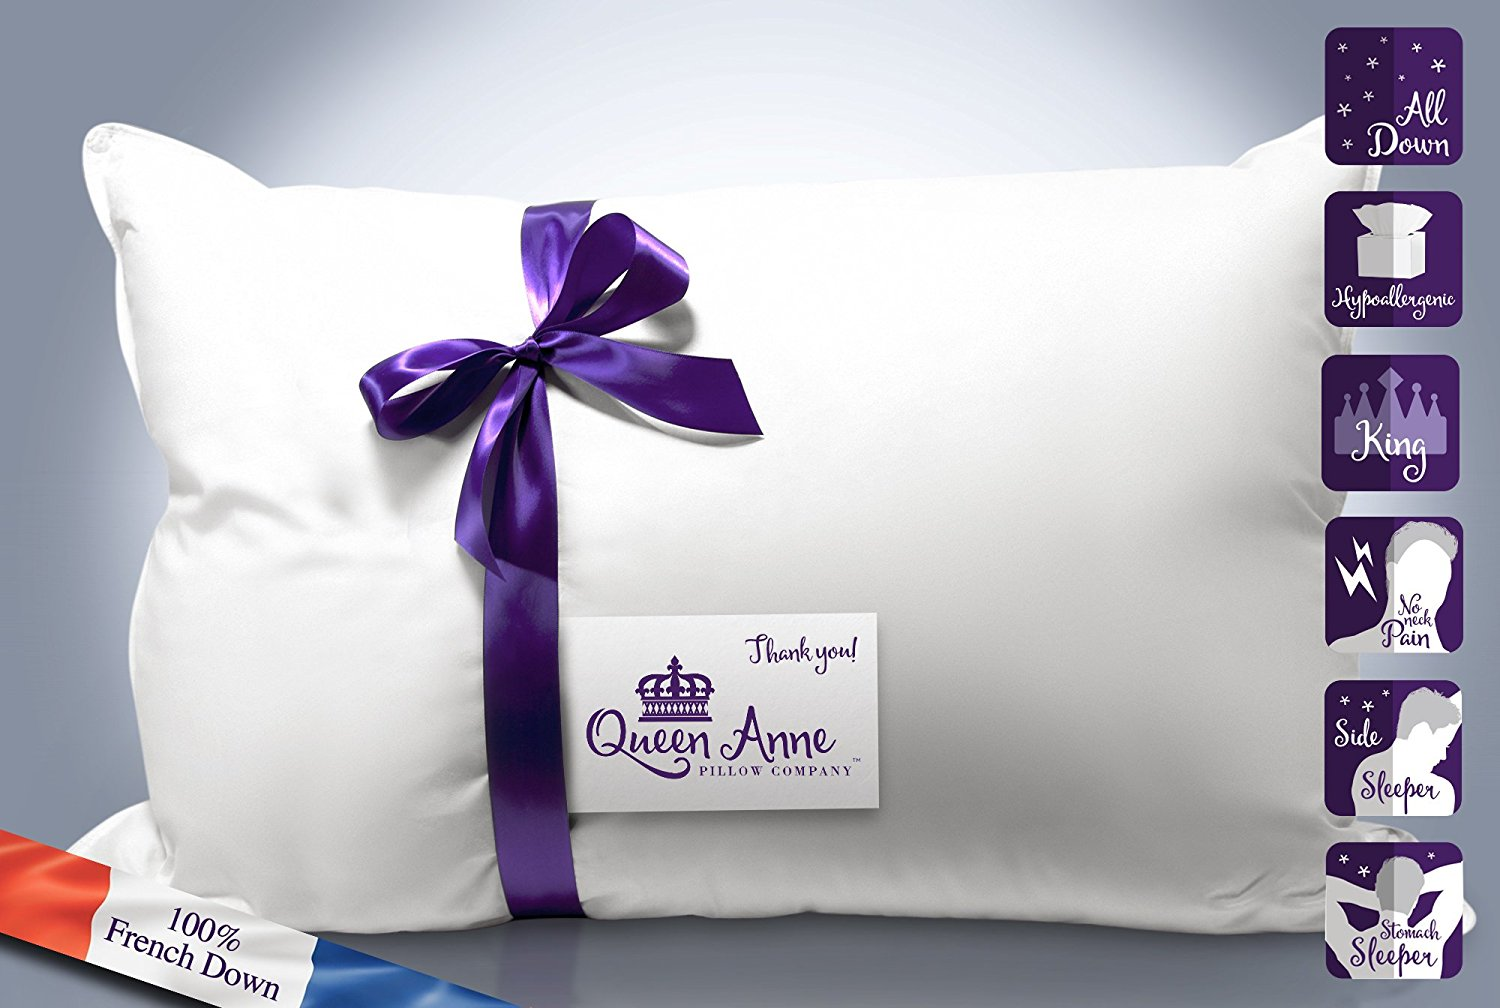 The Original Queen Anne Pillow French Goose Down Luxury Pillow Treat Yourself to Our... by Queen Anne Pillow Company